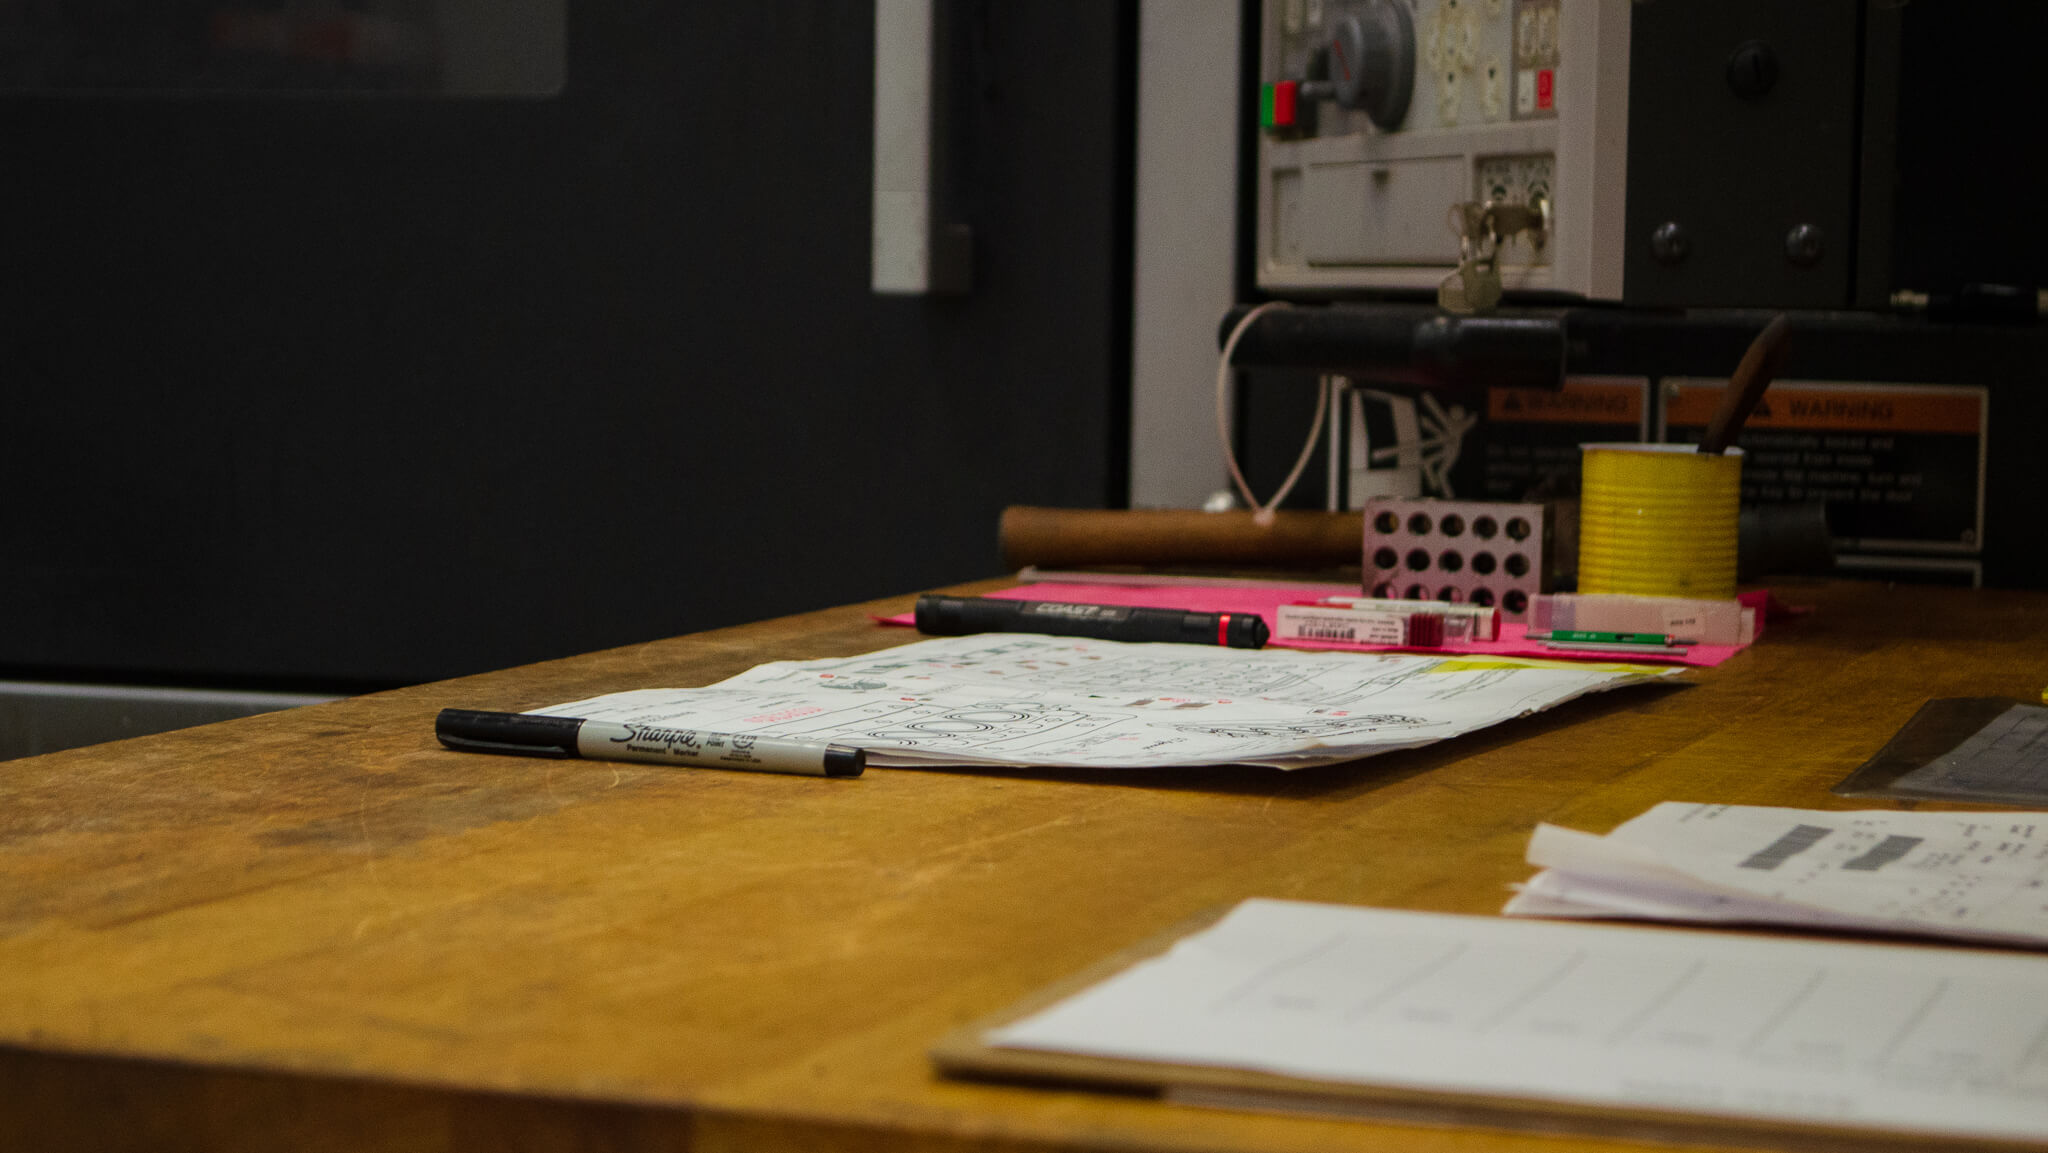 paper inspection planning, papers and markers on a desk